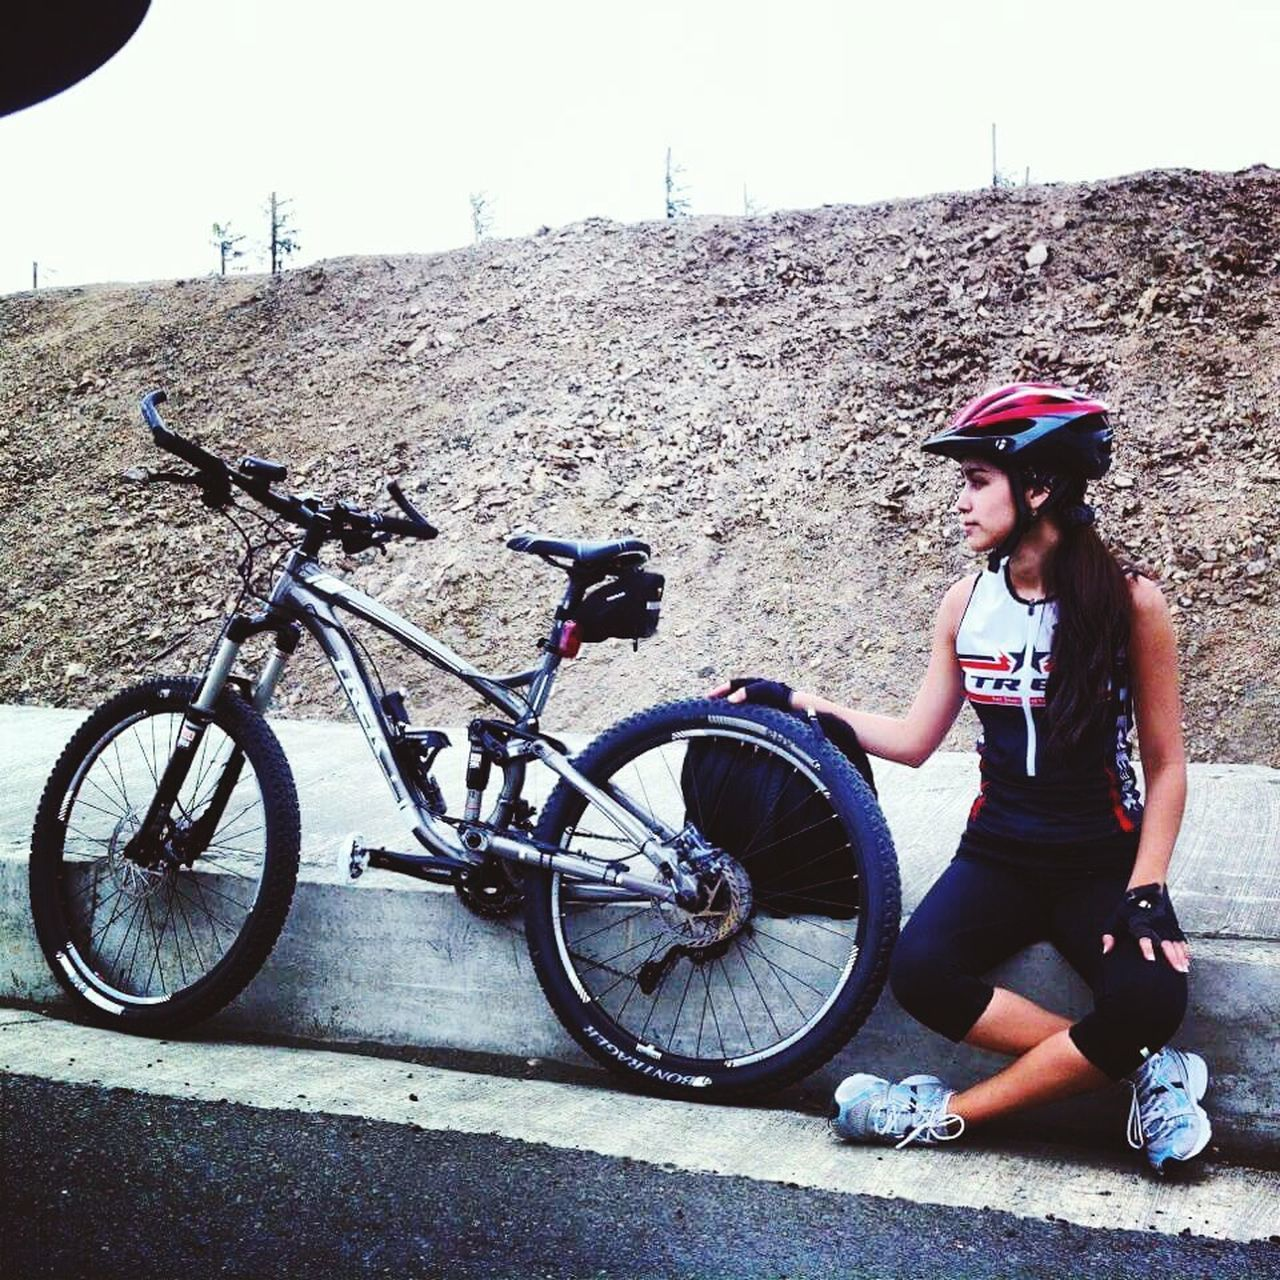 bicycle, real people, transportation, one person, mode of transport, cycling, land vehicle, full length, lifestyles, outdoors, day, leisure activity, cycling helmet, stationary, riding, adventure, young women, headwear, sports helmet, mountain bike, nature, young adult, sky, people